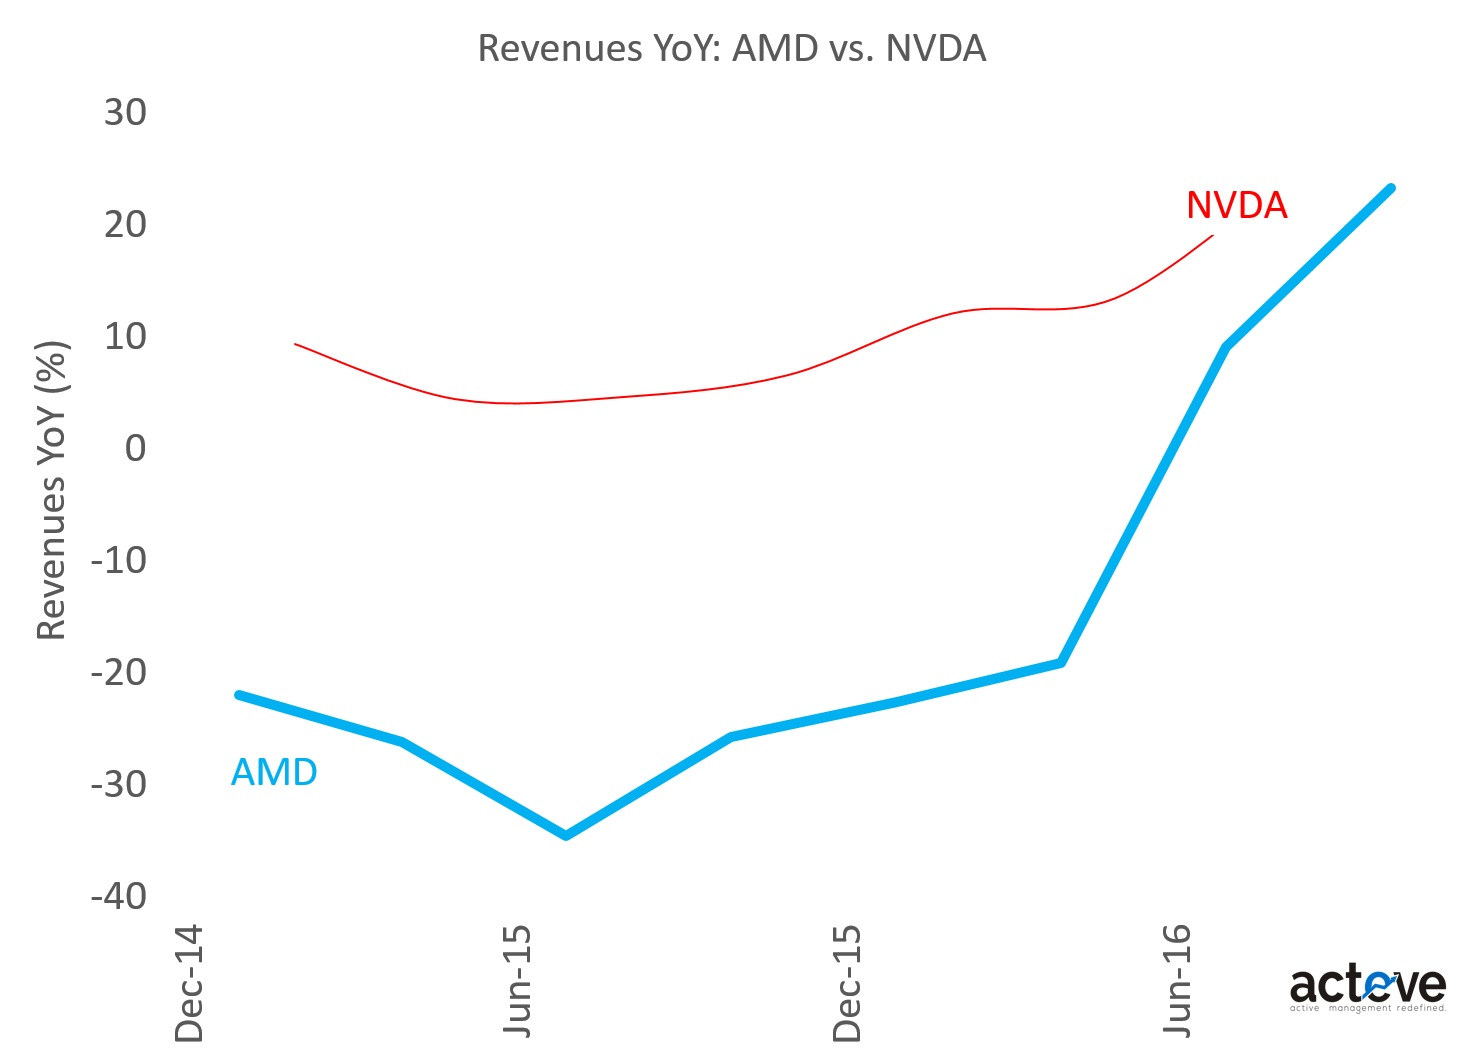 NVIDIA AMD vs. NVDA Revenues YoY